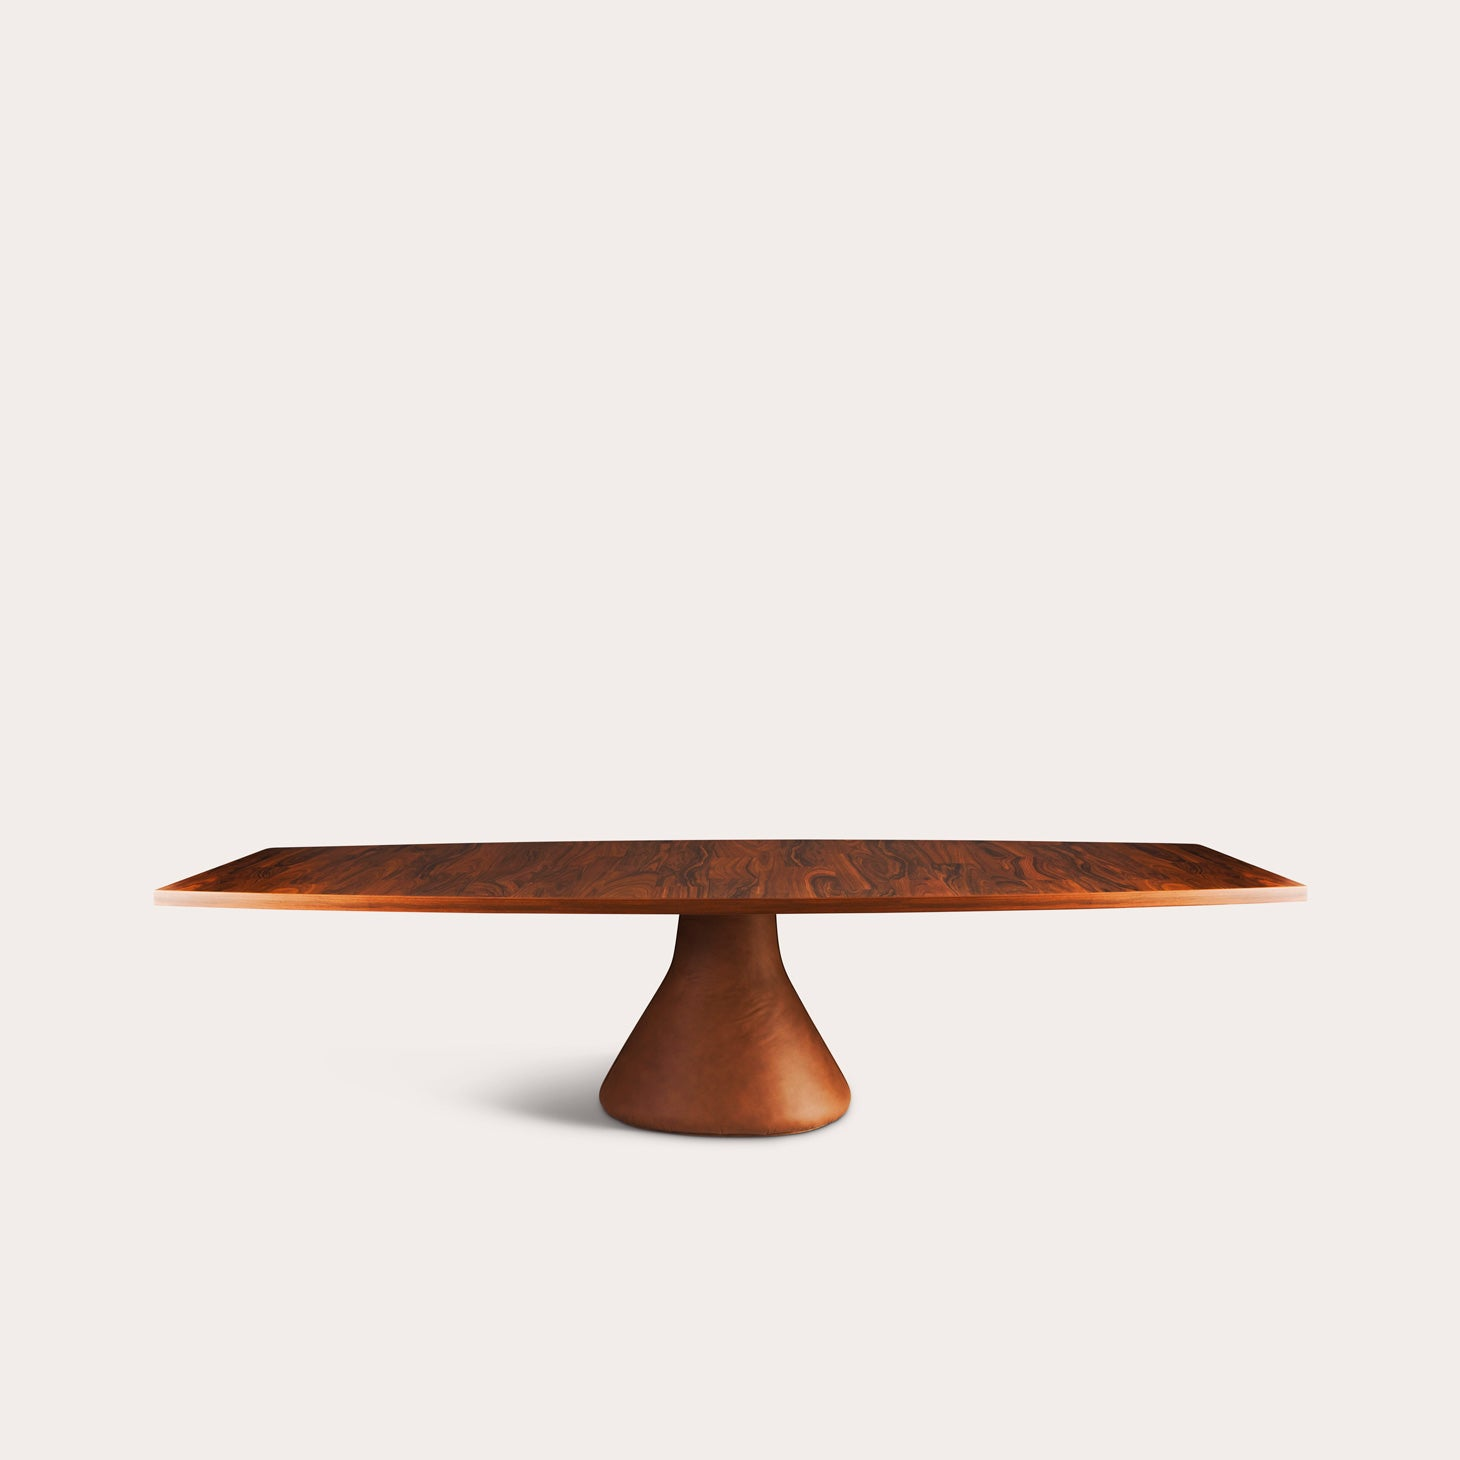 Guanabara Dining Table Tables Jorge Zalszupin Designer Furniture Sku: 003-230-10148